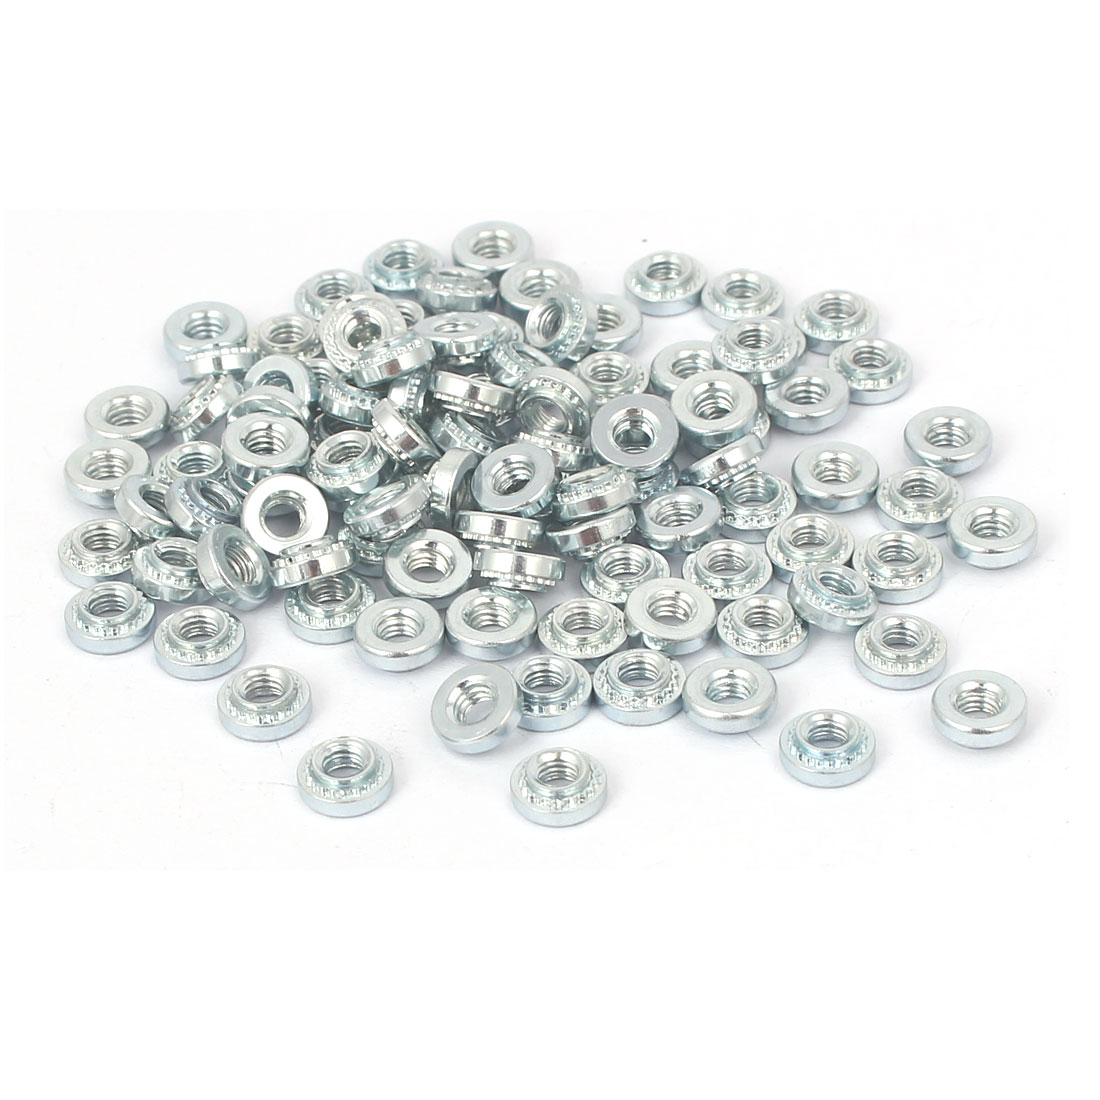 S-M3-0 Carbon Steel Self Clinching Rivet Nut Fastener 100pcs for 0.8mm Thin Plates